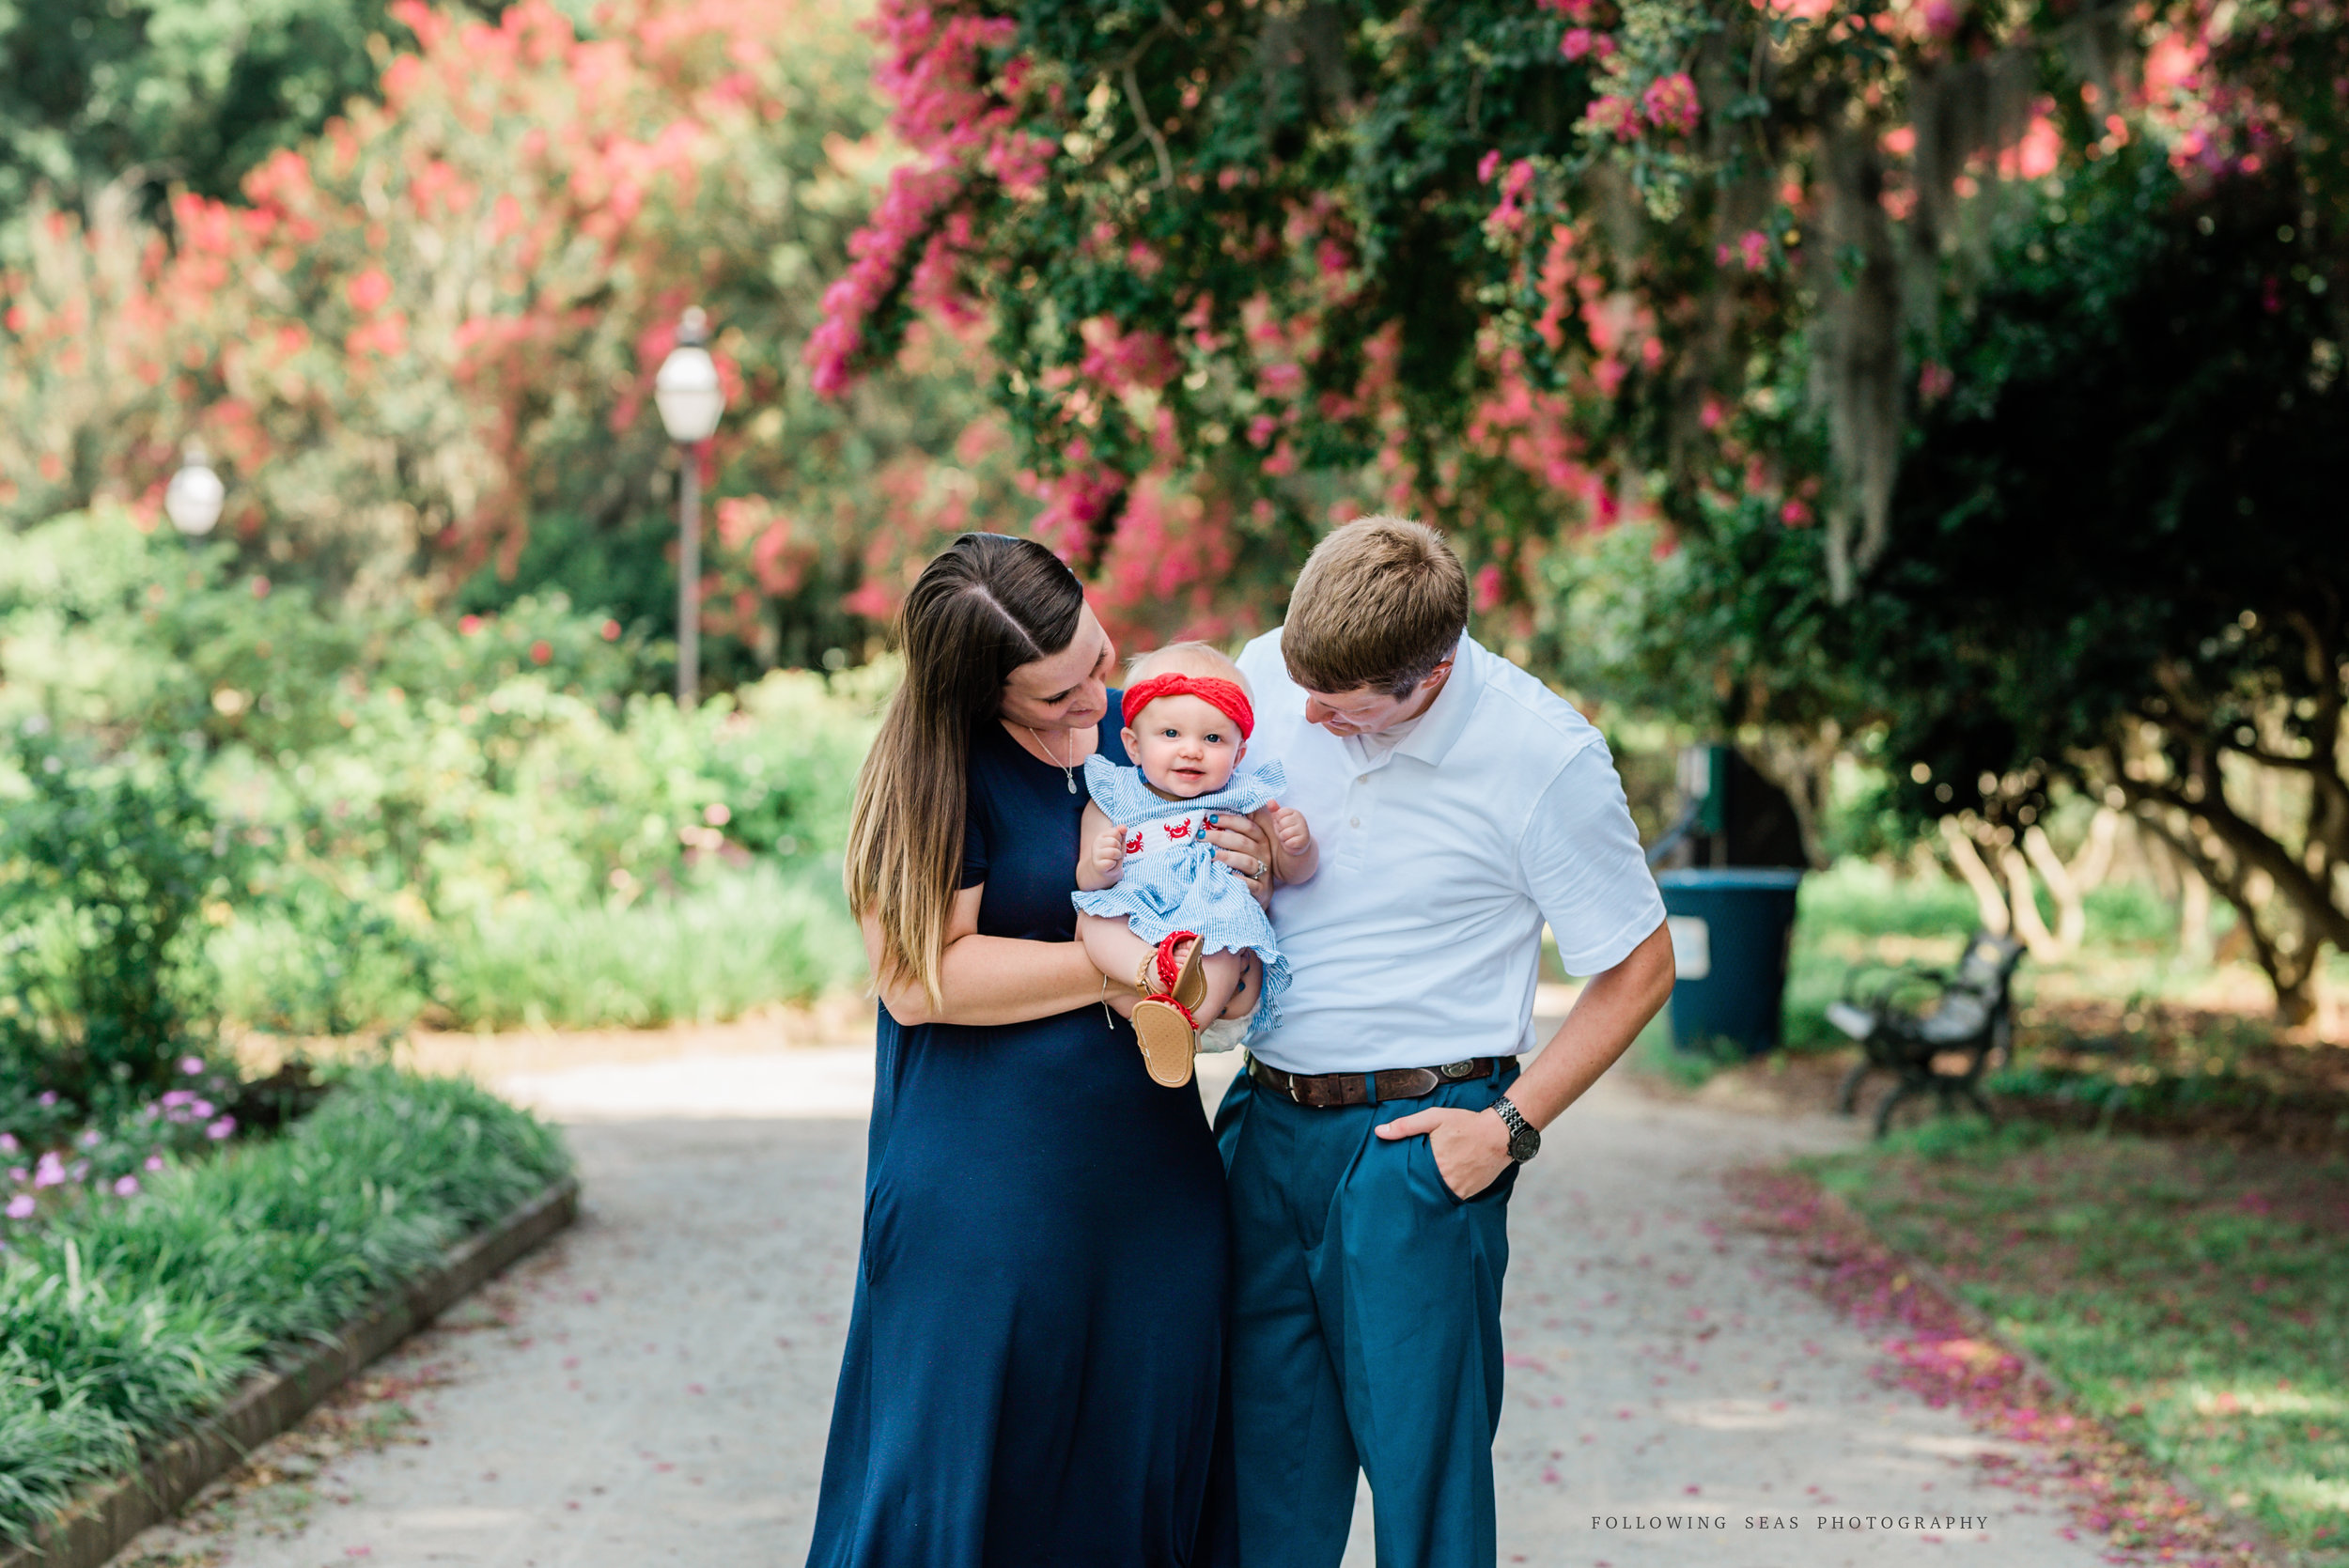 Charleston-Family-Photographer-Following-Seas-Photography-FSP_1400.jpg